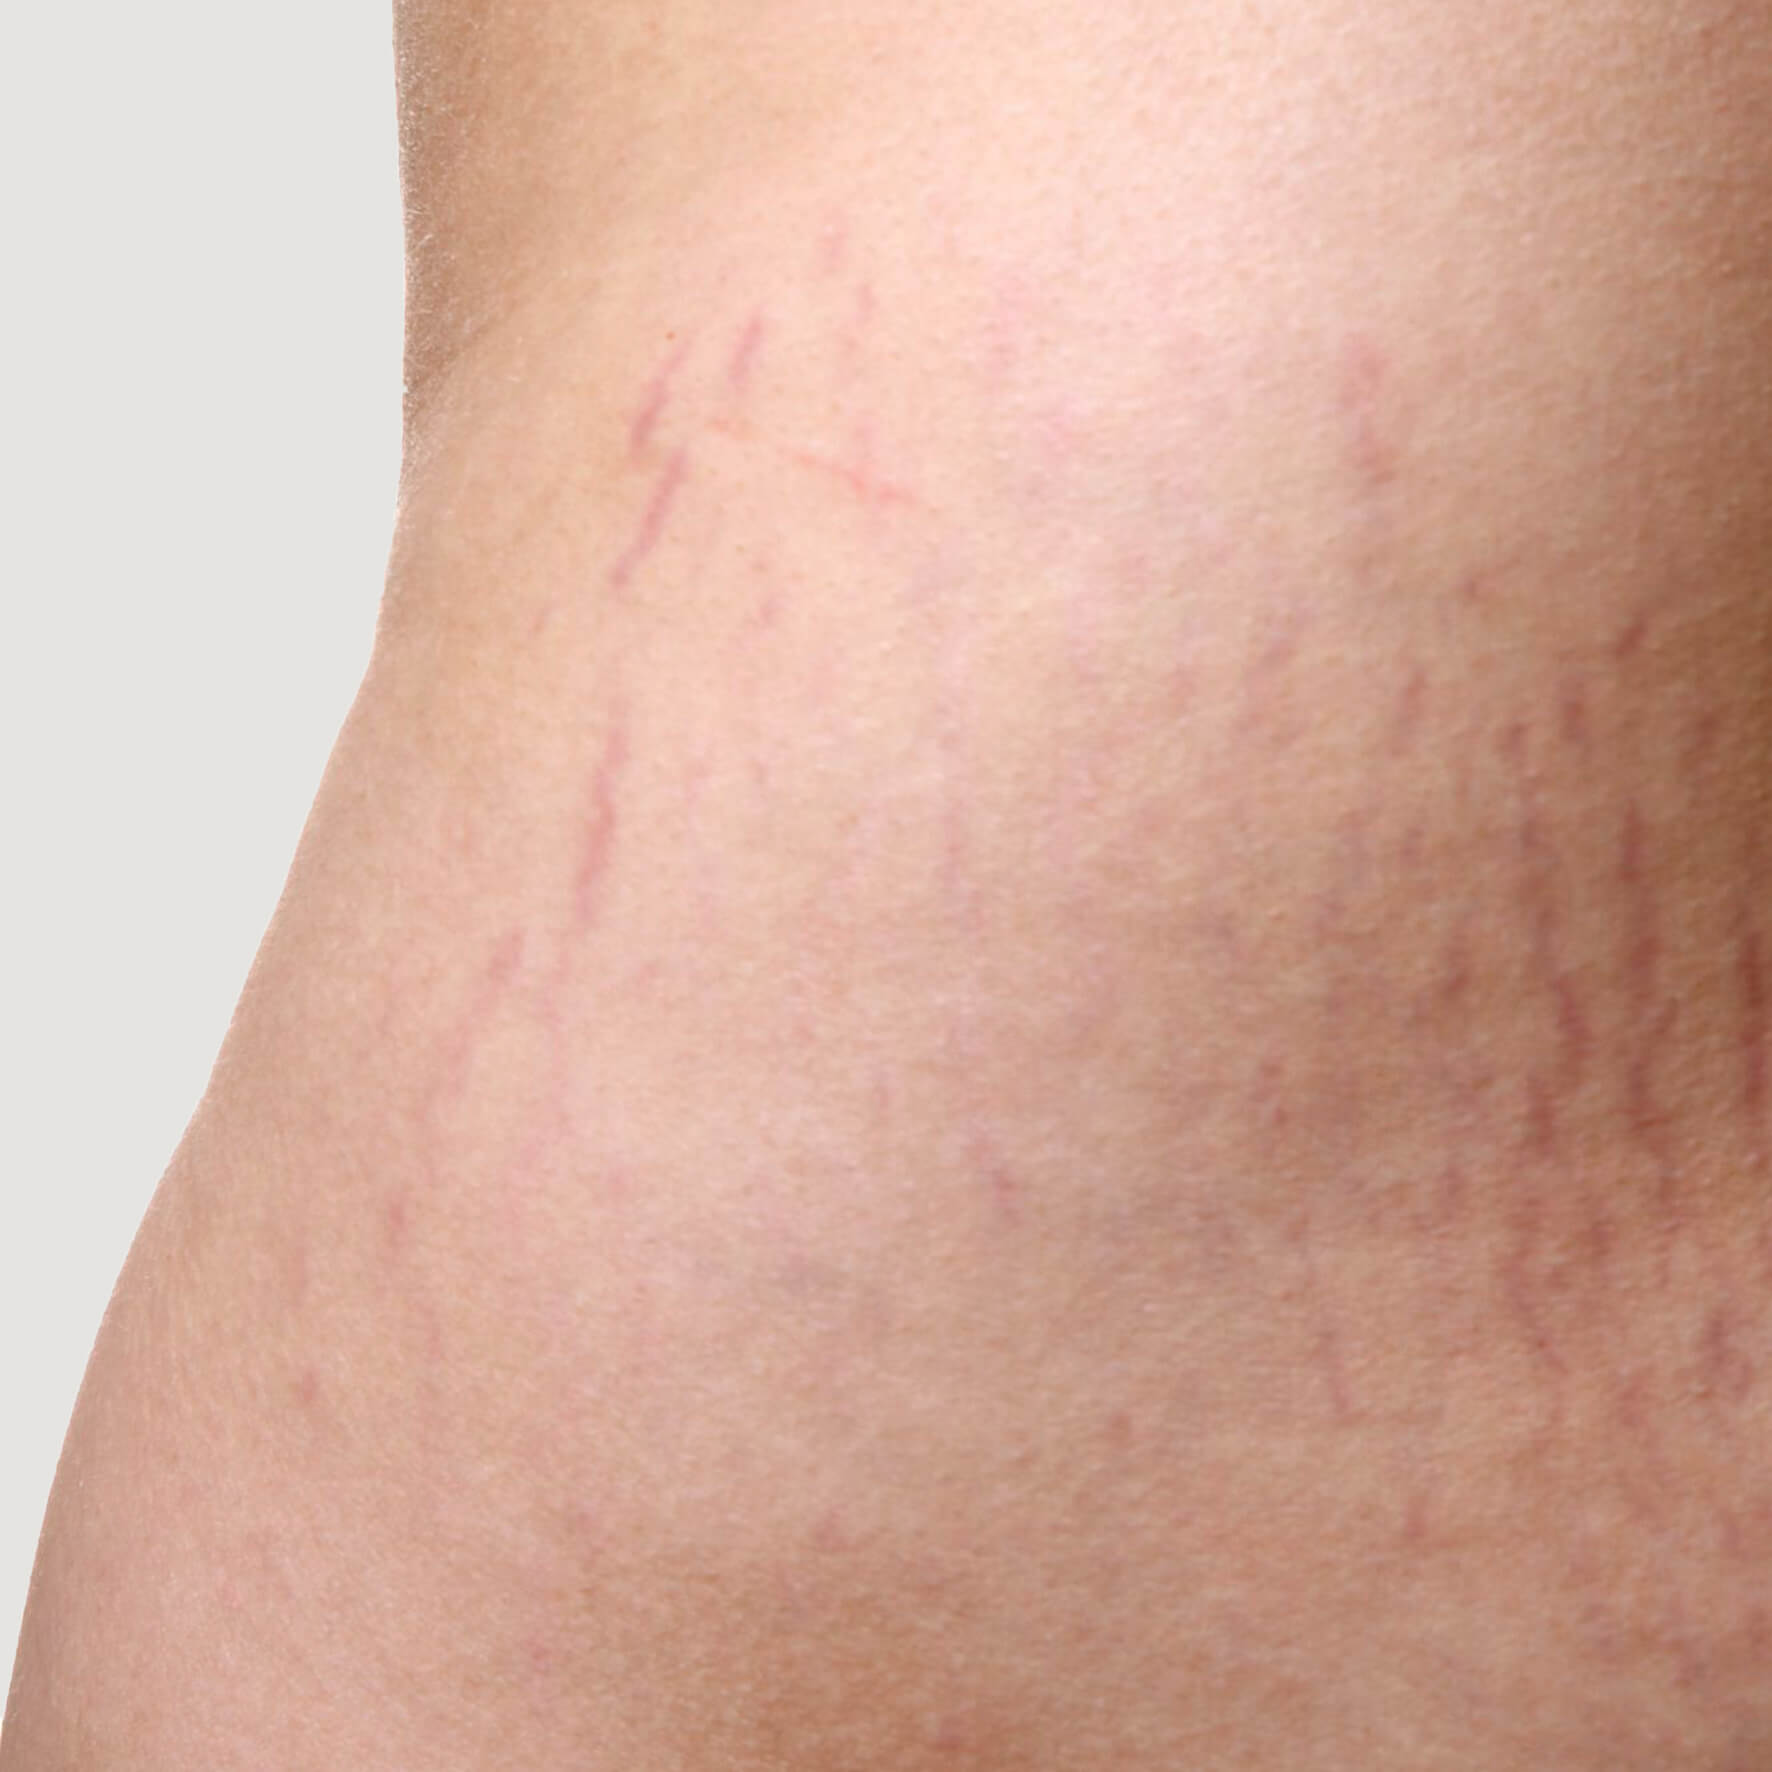 Early Stretch Marks (red/pink)